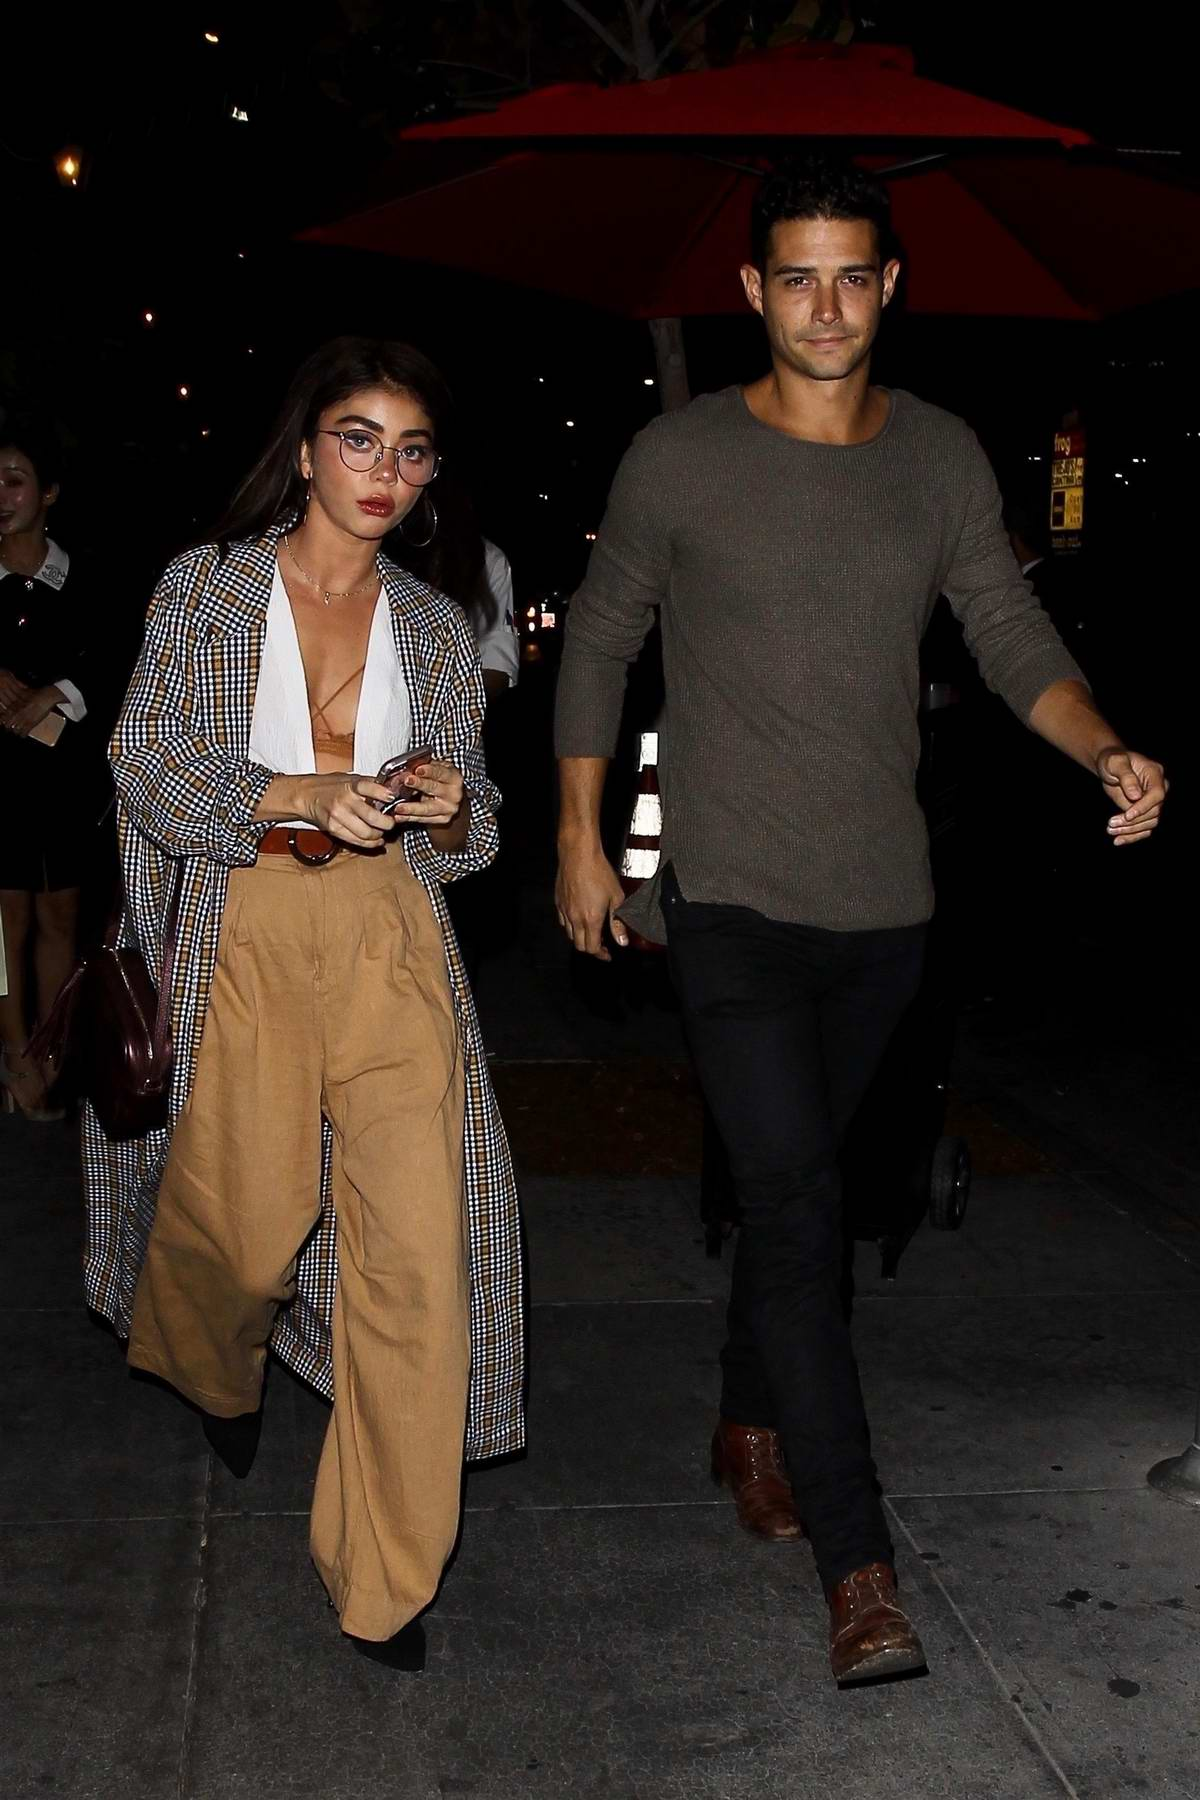 Sarah Hyland and Wells Adams enjoy date night at Beauty & Essex in Hollywood, Los Angeles